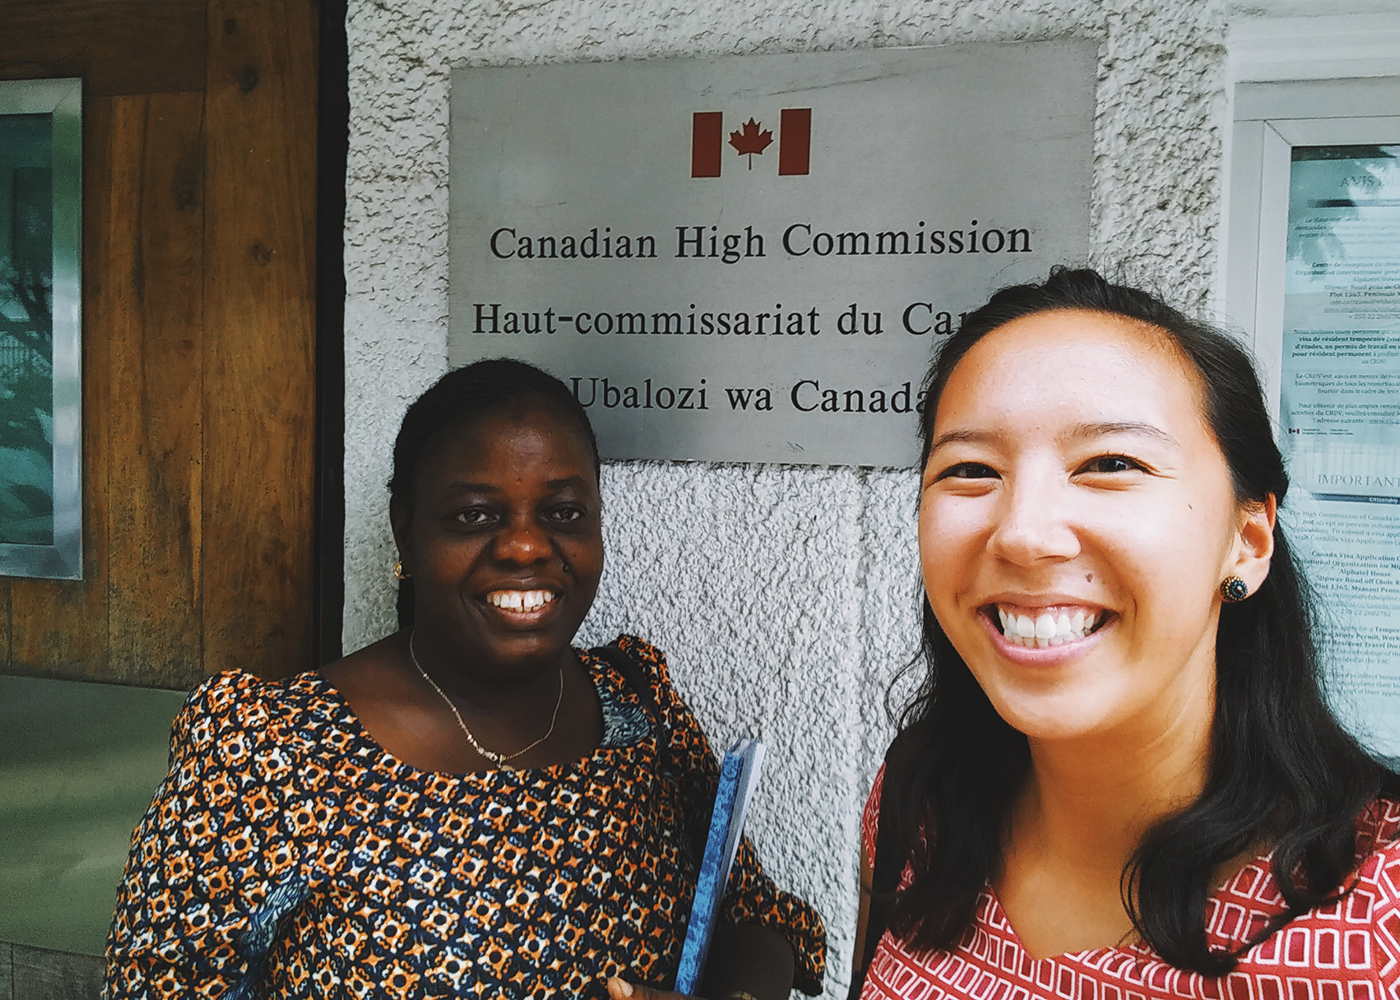 Hilary and EQWIP HUBs Tanzania Country Manager Stella Mayenje after a meeting at the Canadian High Commission in Dar es Salaam.